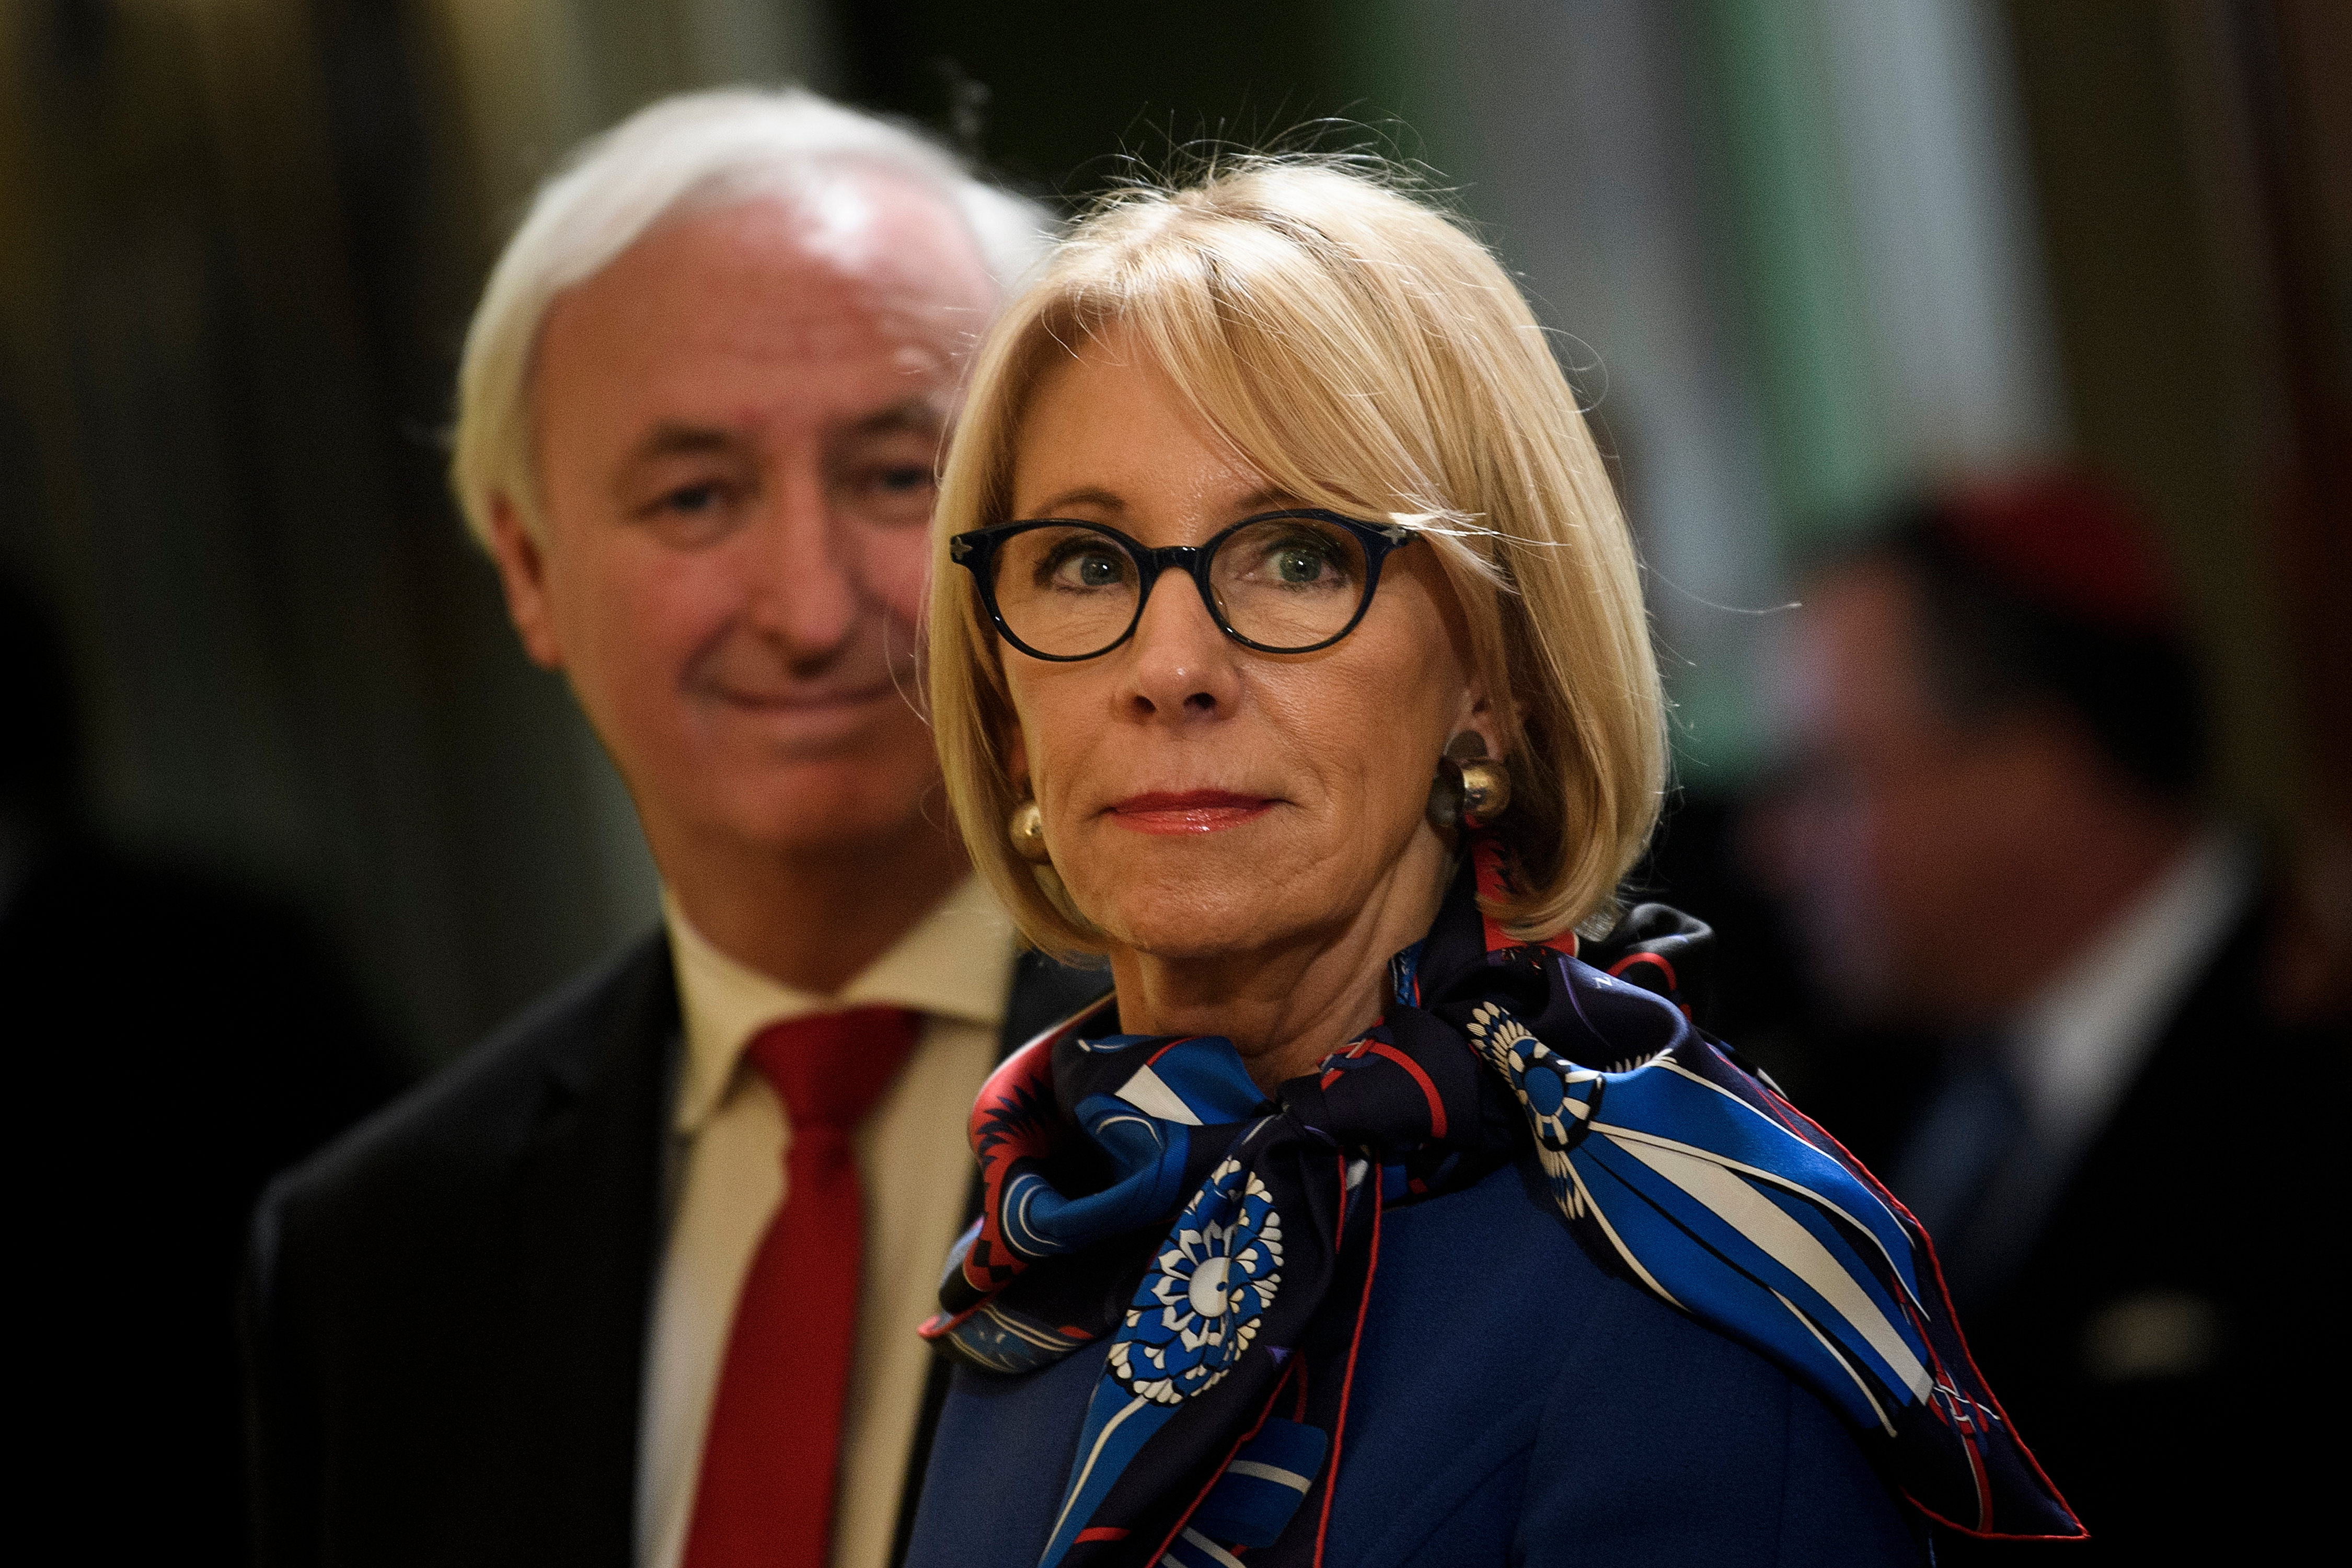 DeVos, in black rimmed square glasses, shoulder length blonde hair, a blue suit, and a blue, white, and red silk scarf, smiles slightly. A blurry crowd is behind her.